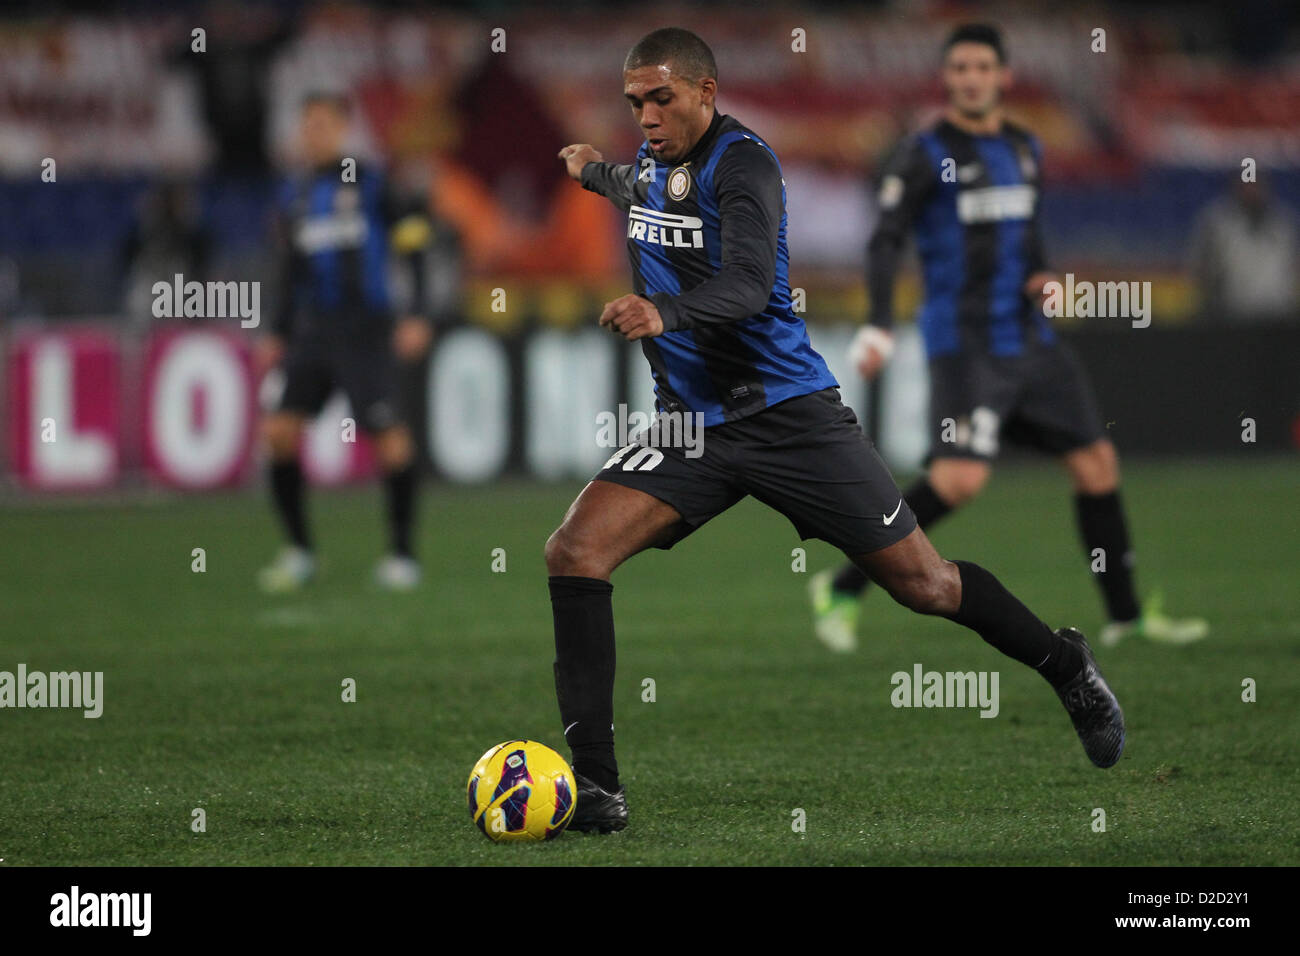 20.01.2013 Rome, Italy. Juan in action during the Serie A game between Roma and Inter Milan from the Stadio Olympico. - Stock Image